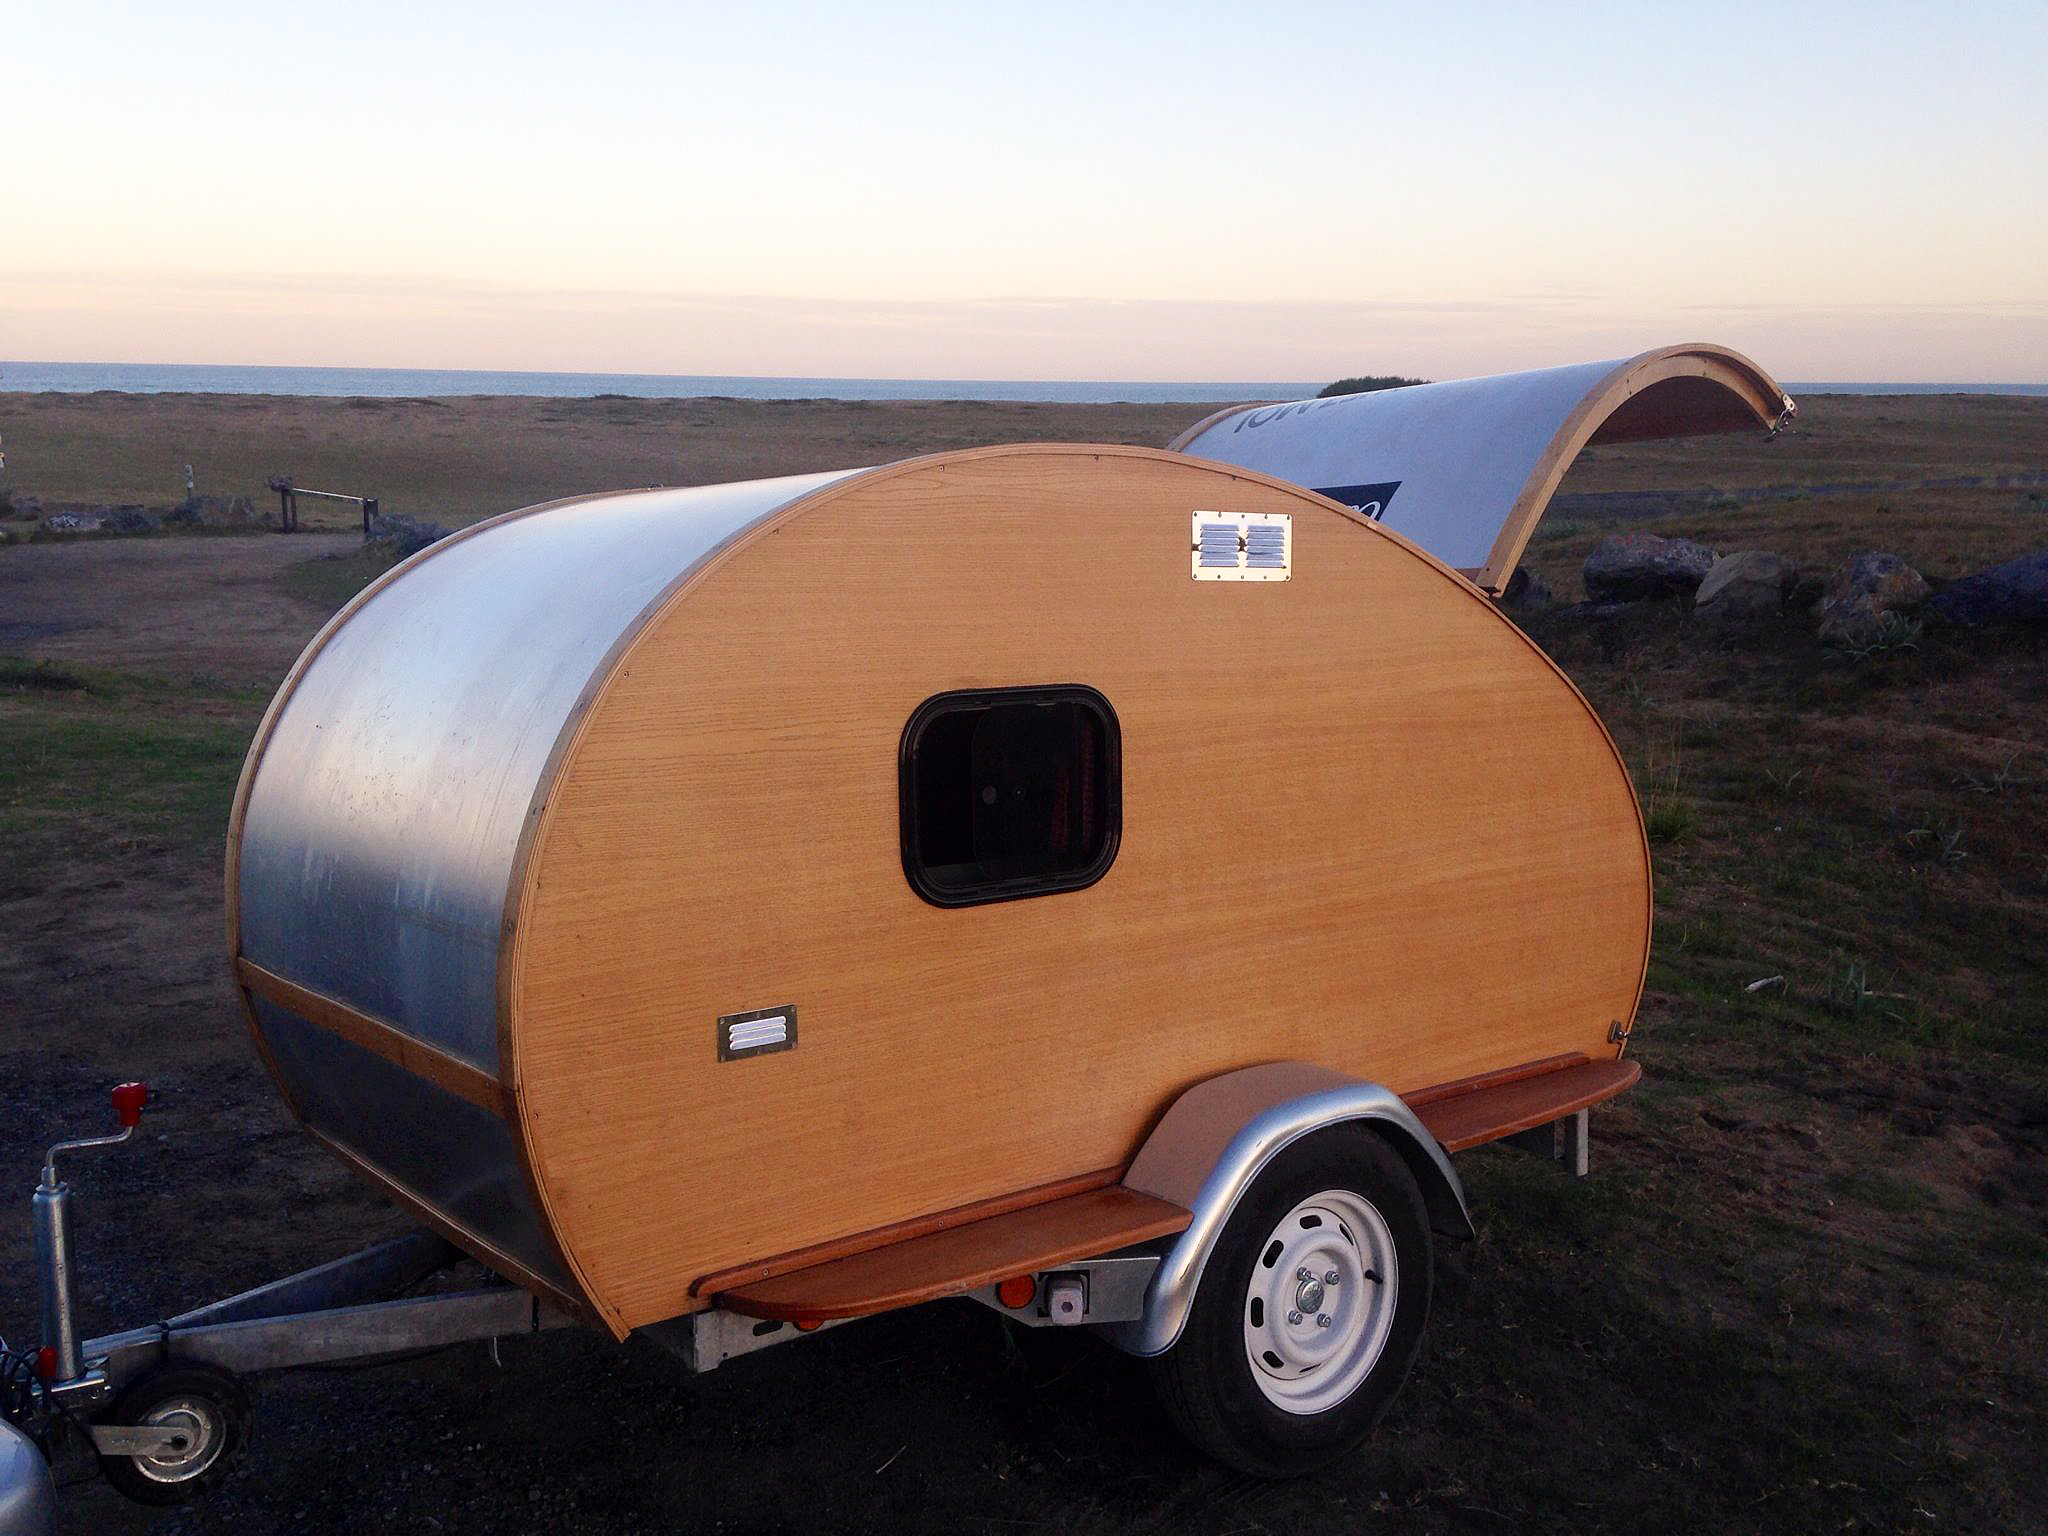 Wooden Teardrop Trailers and Surfboards Built in France The